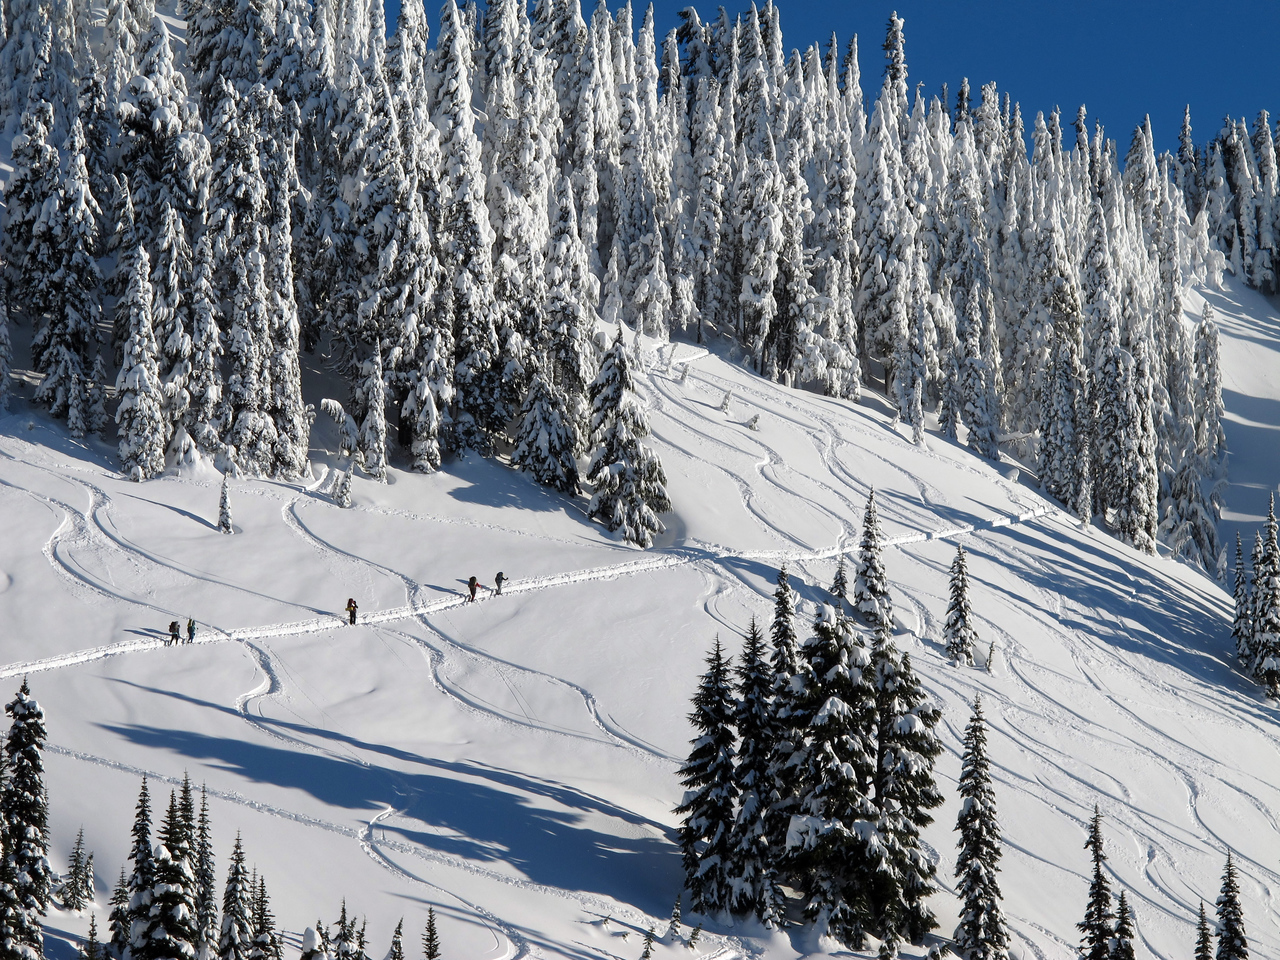 Skiers/snowboarders climbing up on the steep slope of Mazama Ridge (where we failed to reach the ridge).